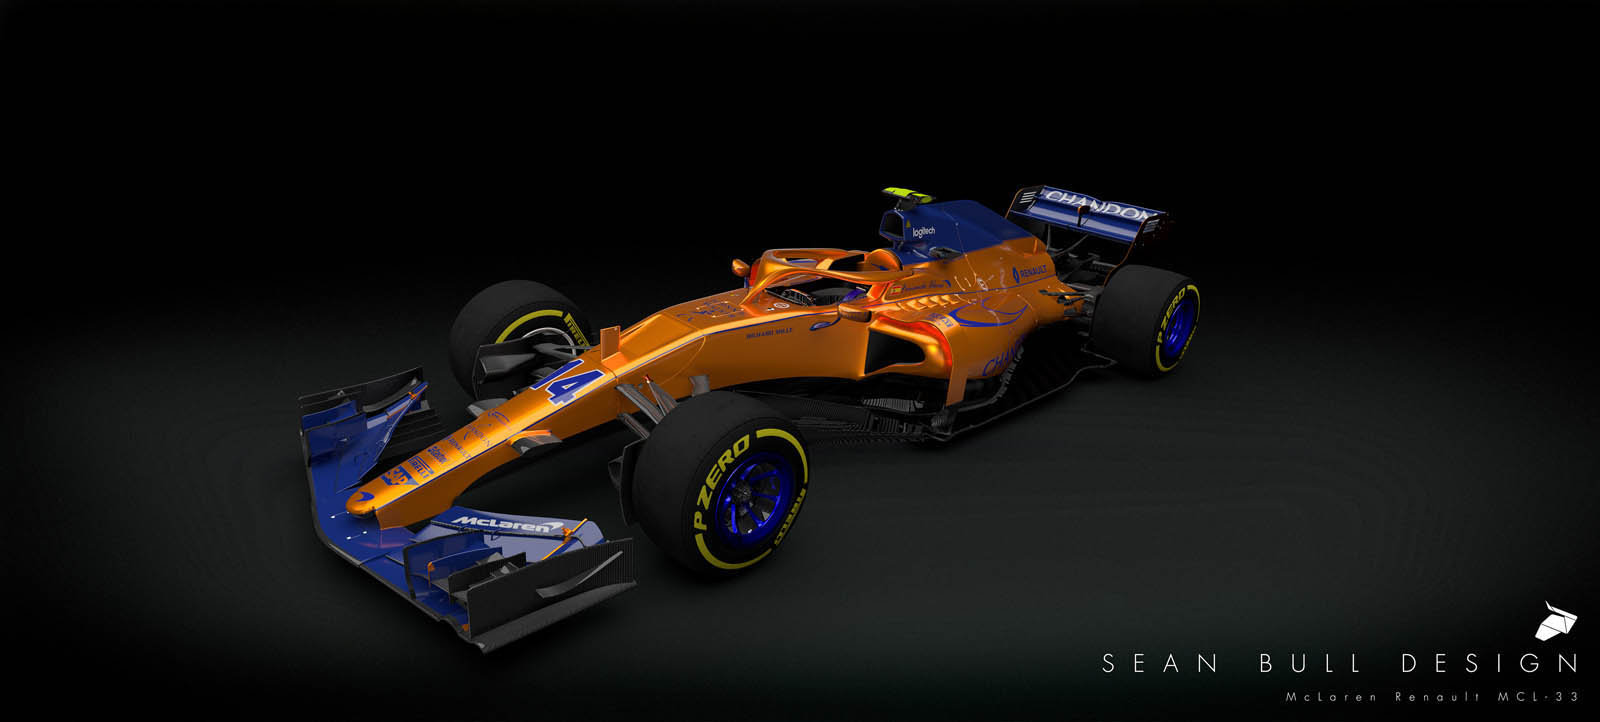 Maybe The 2018 Mclaren Renault Mcl33 Will Actually Win